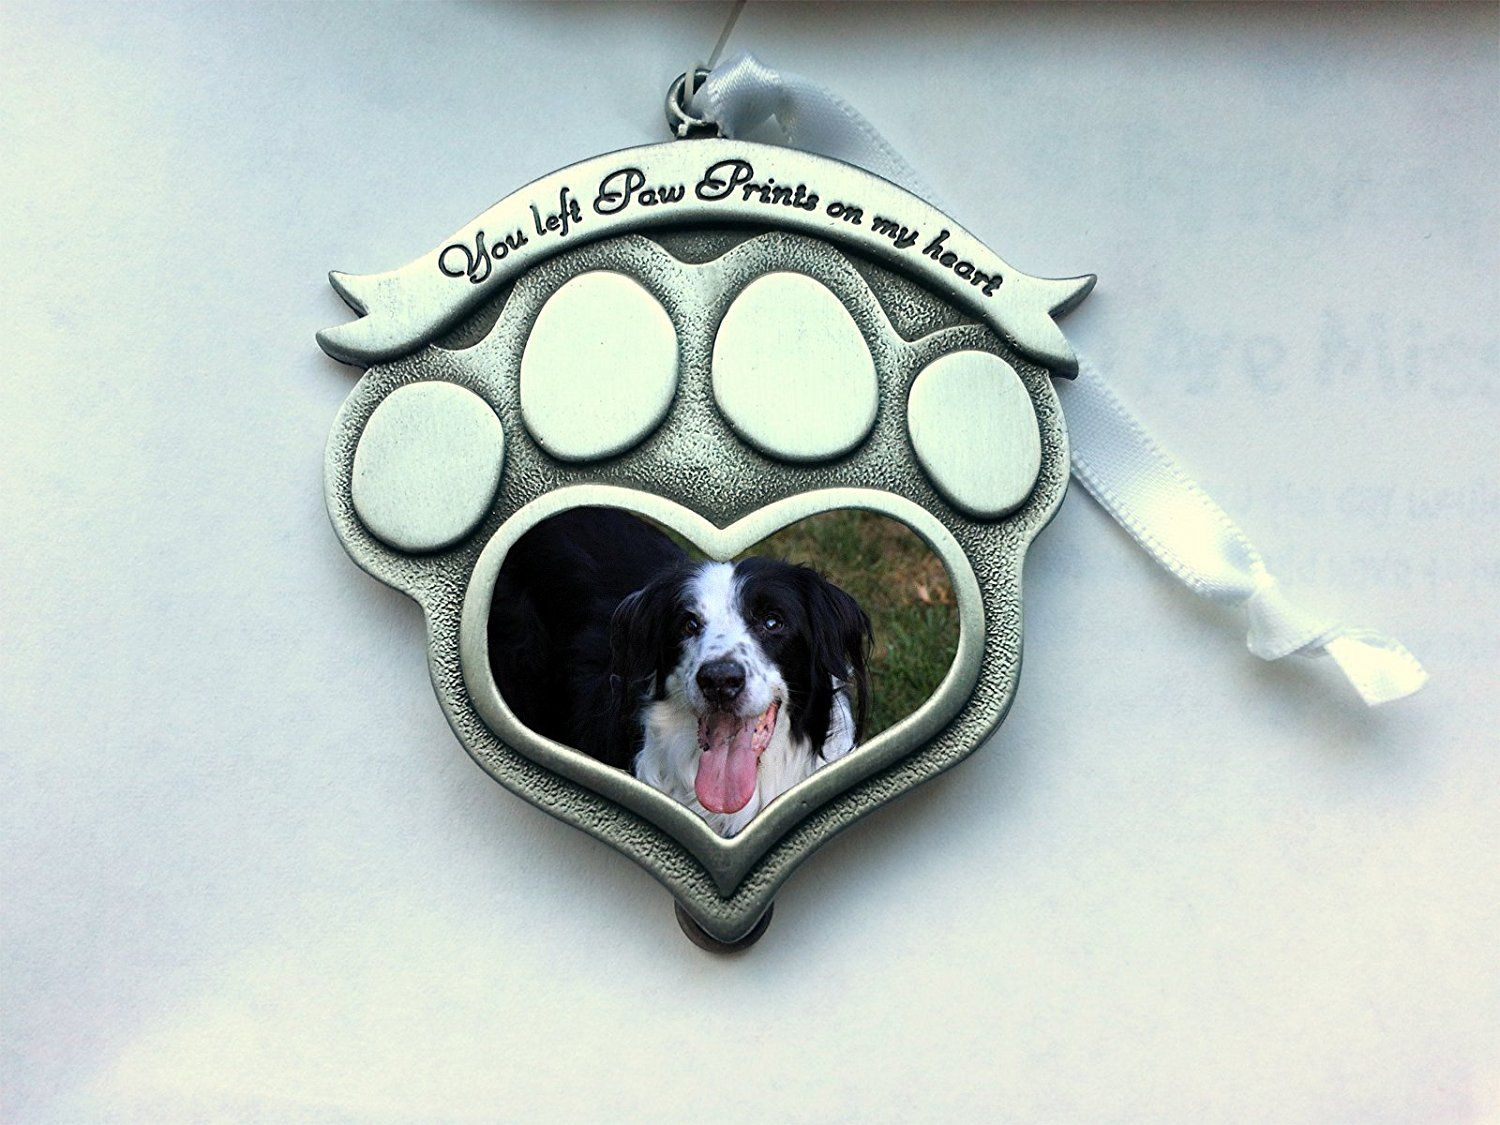 Pet Memorial Photo Frame Ornament You Left Paw Prints on